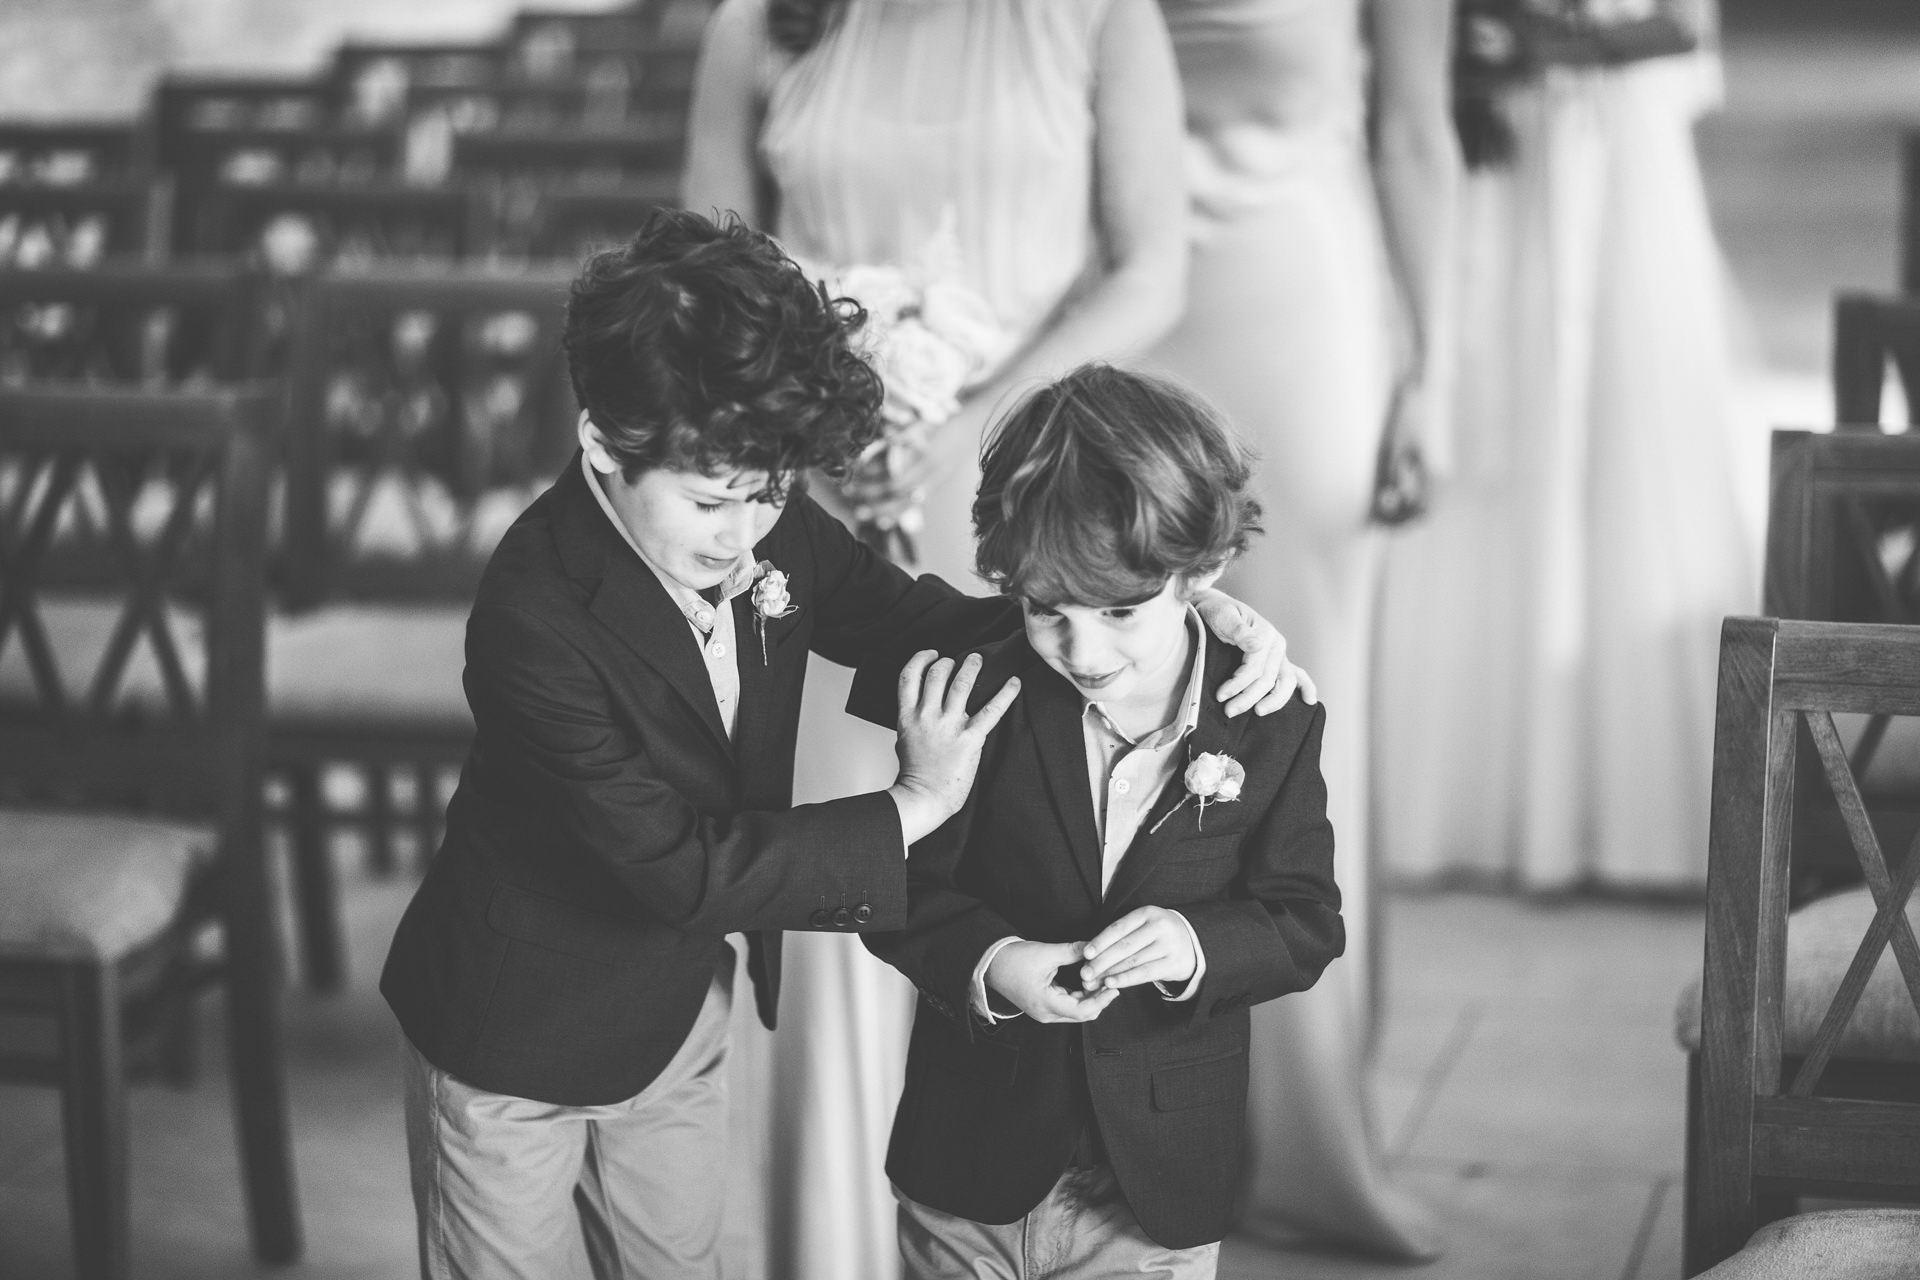 Best wedding photography 2016 - kids playing before the ceremony